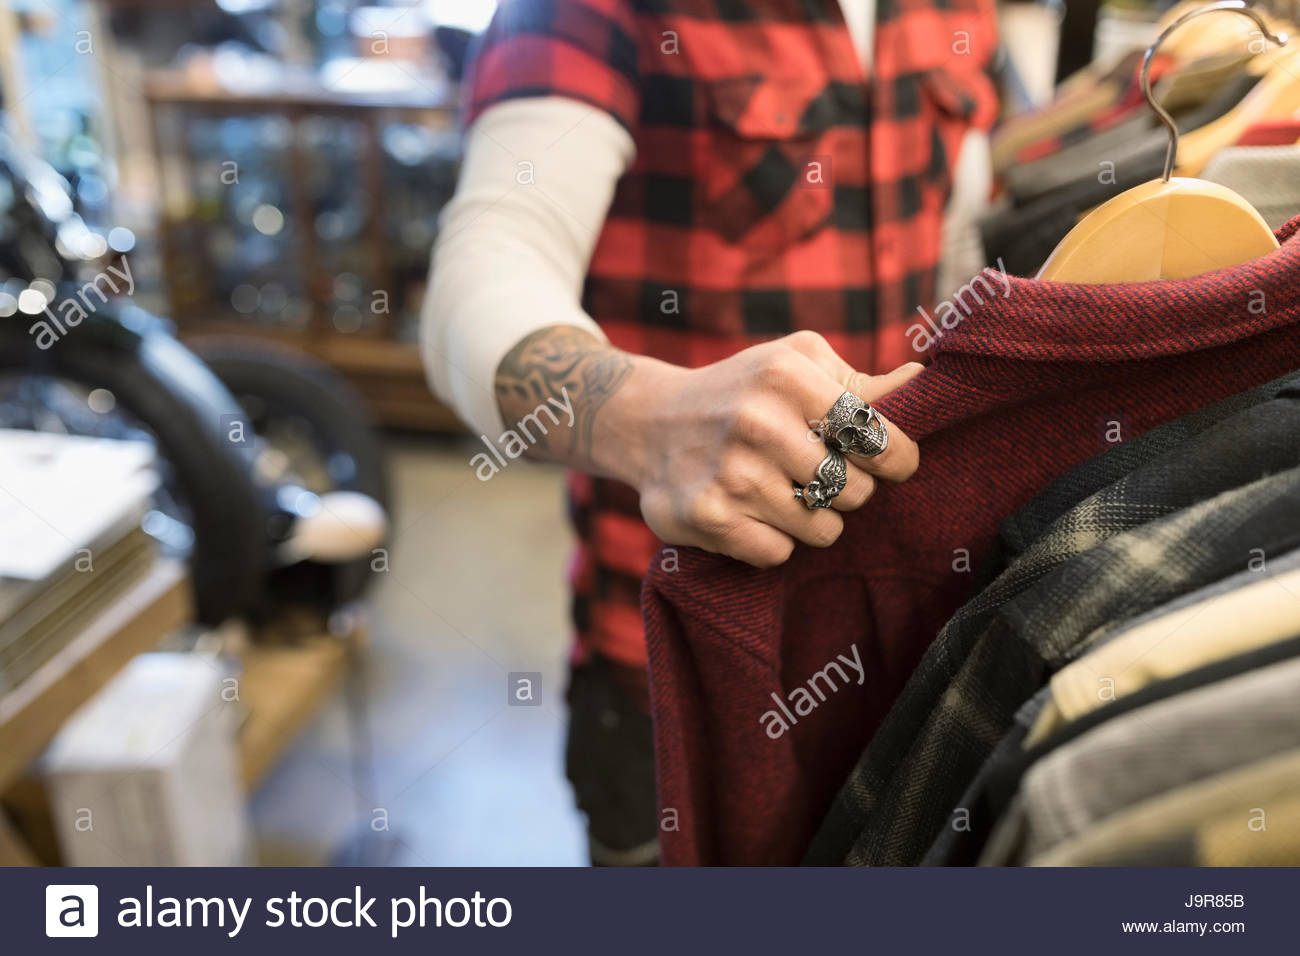 Male customer with tattoo and rings shopping, browsing at clothing in shop - Stock Image